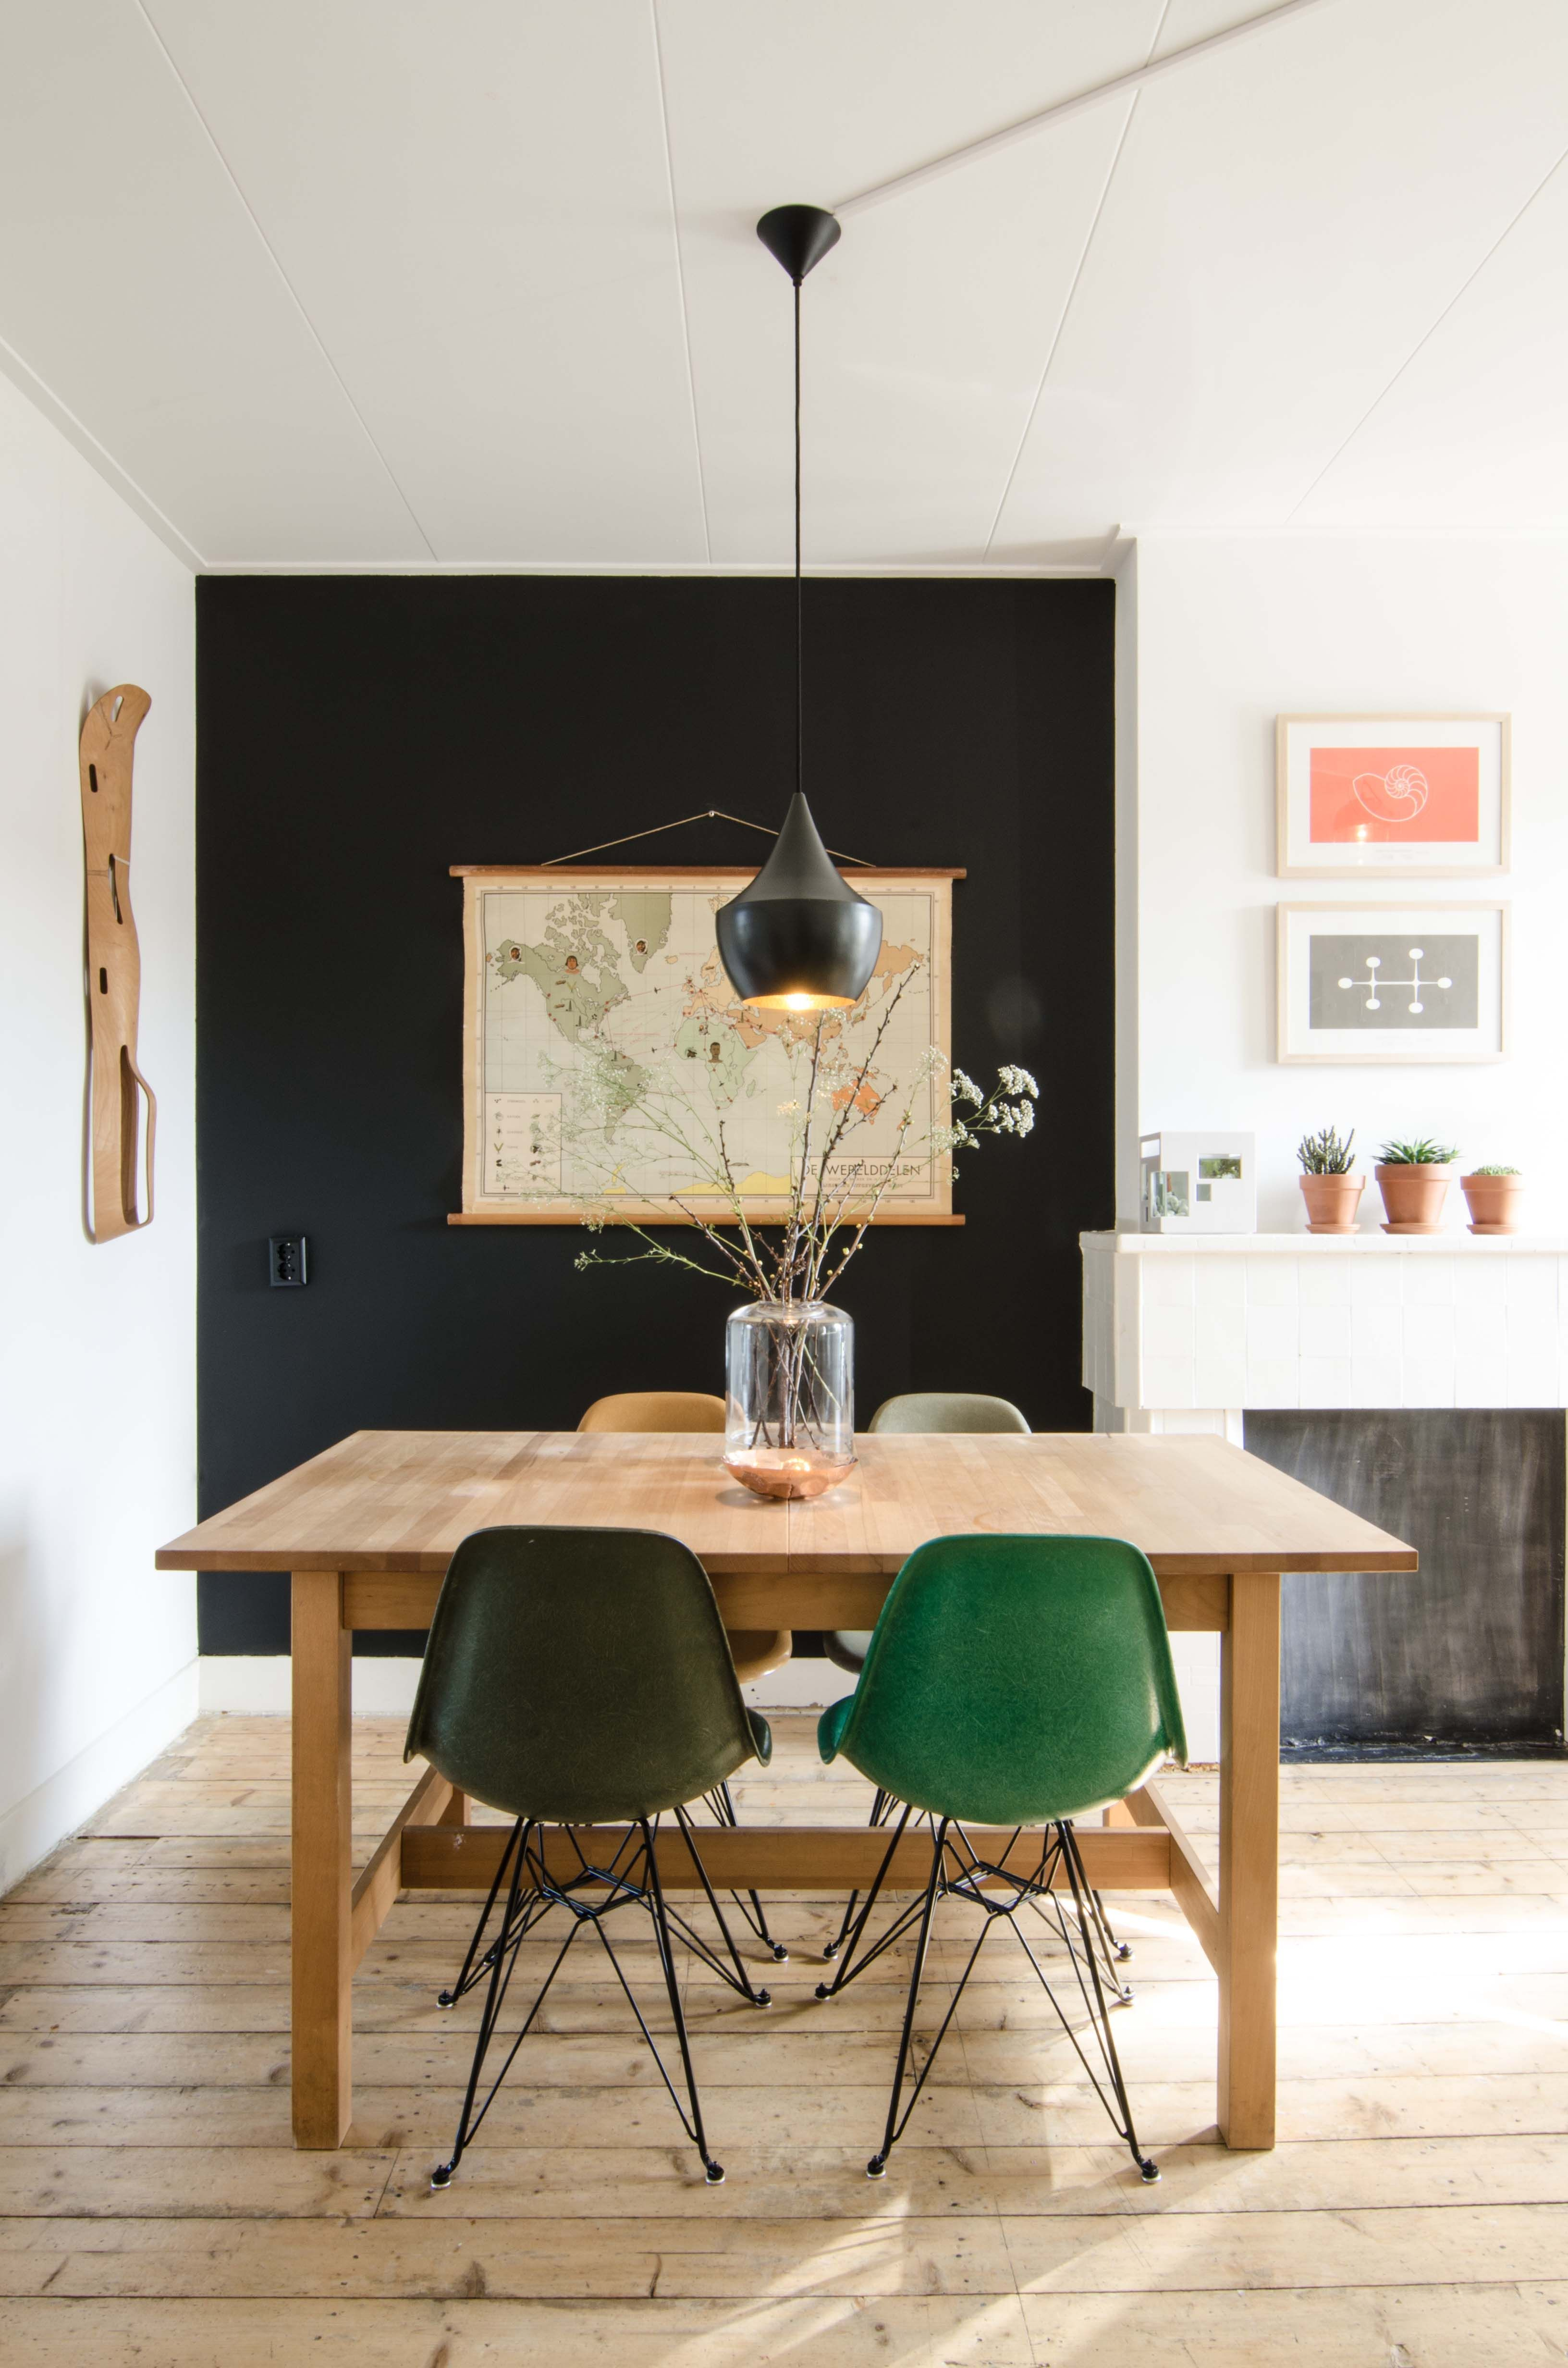 This is one of the prettiest dining spaces we ve seen in a while